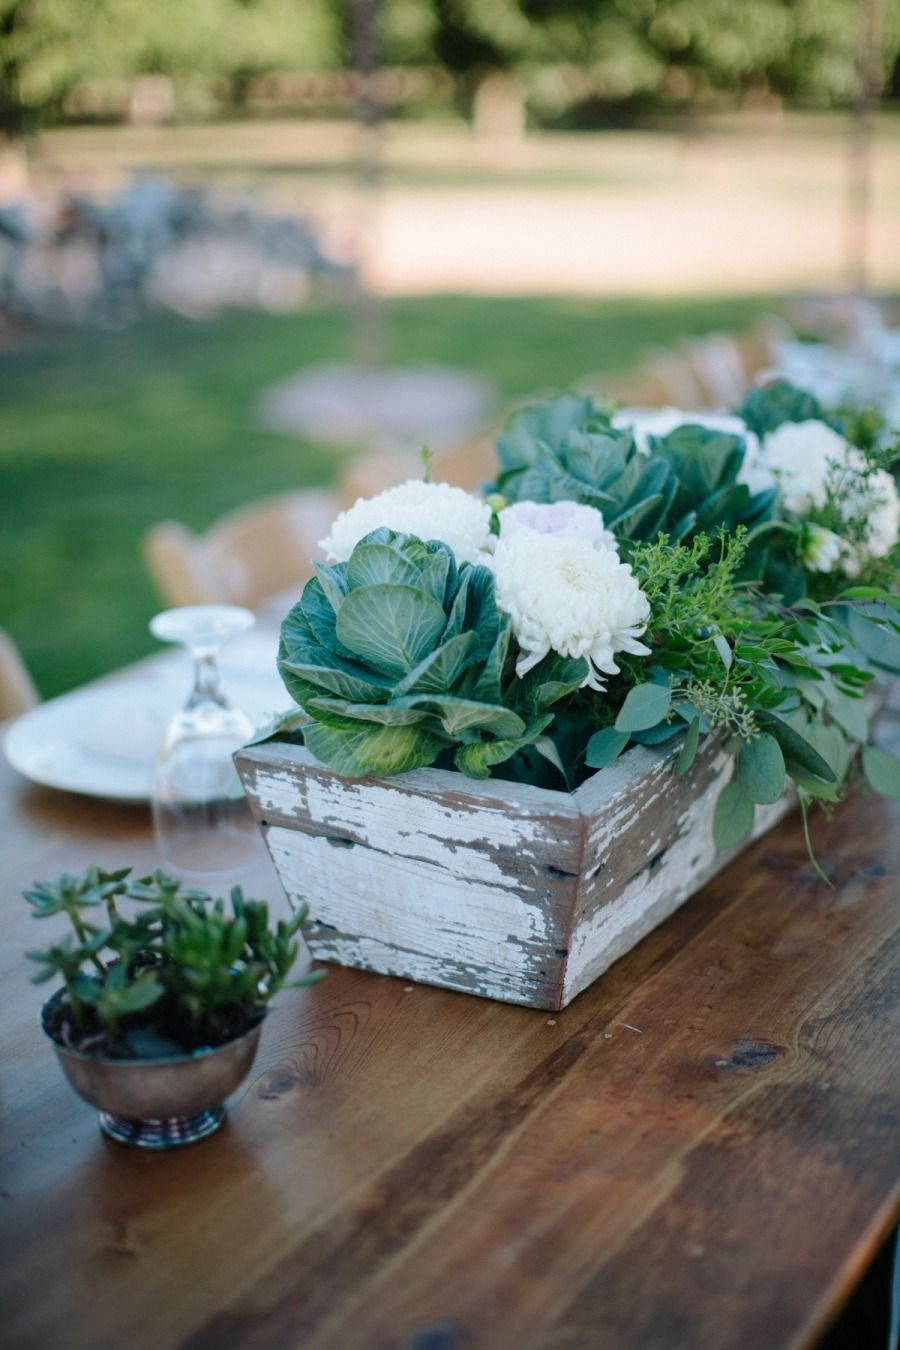 Wedding decorations styles october 2018 Casual Walnut Orchard Wedding in   Wedding Plans  Pinterest